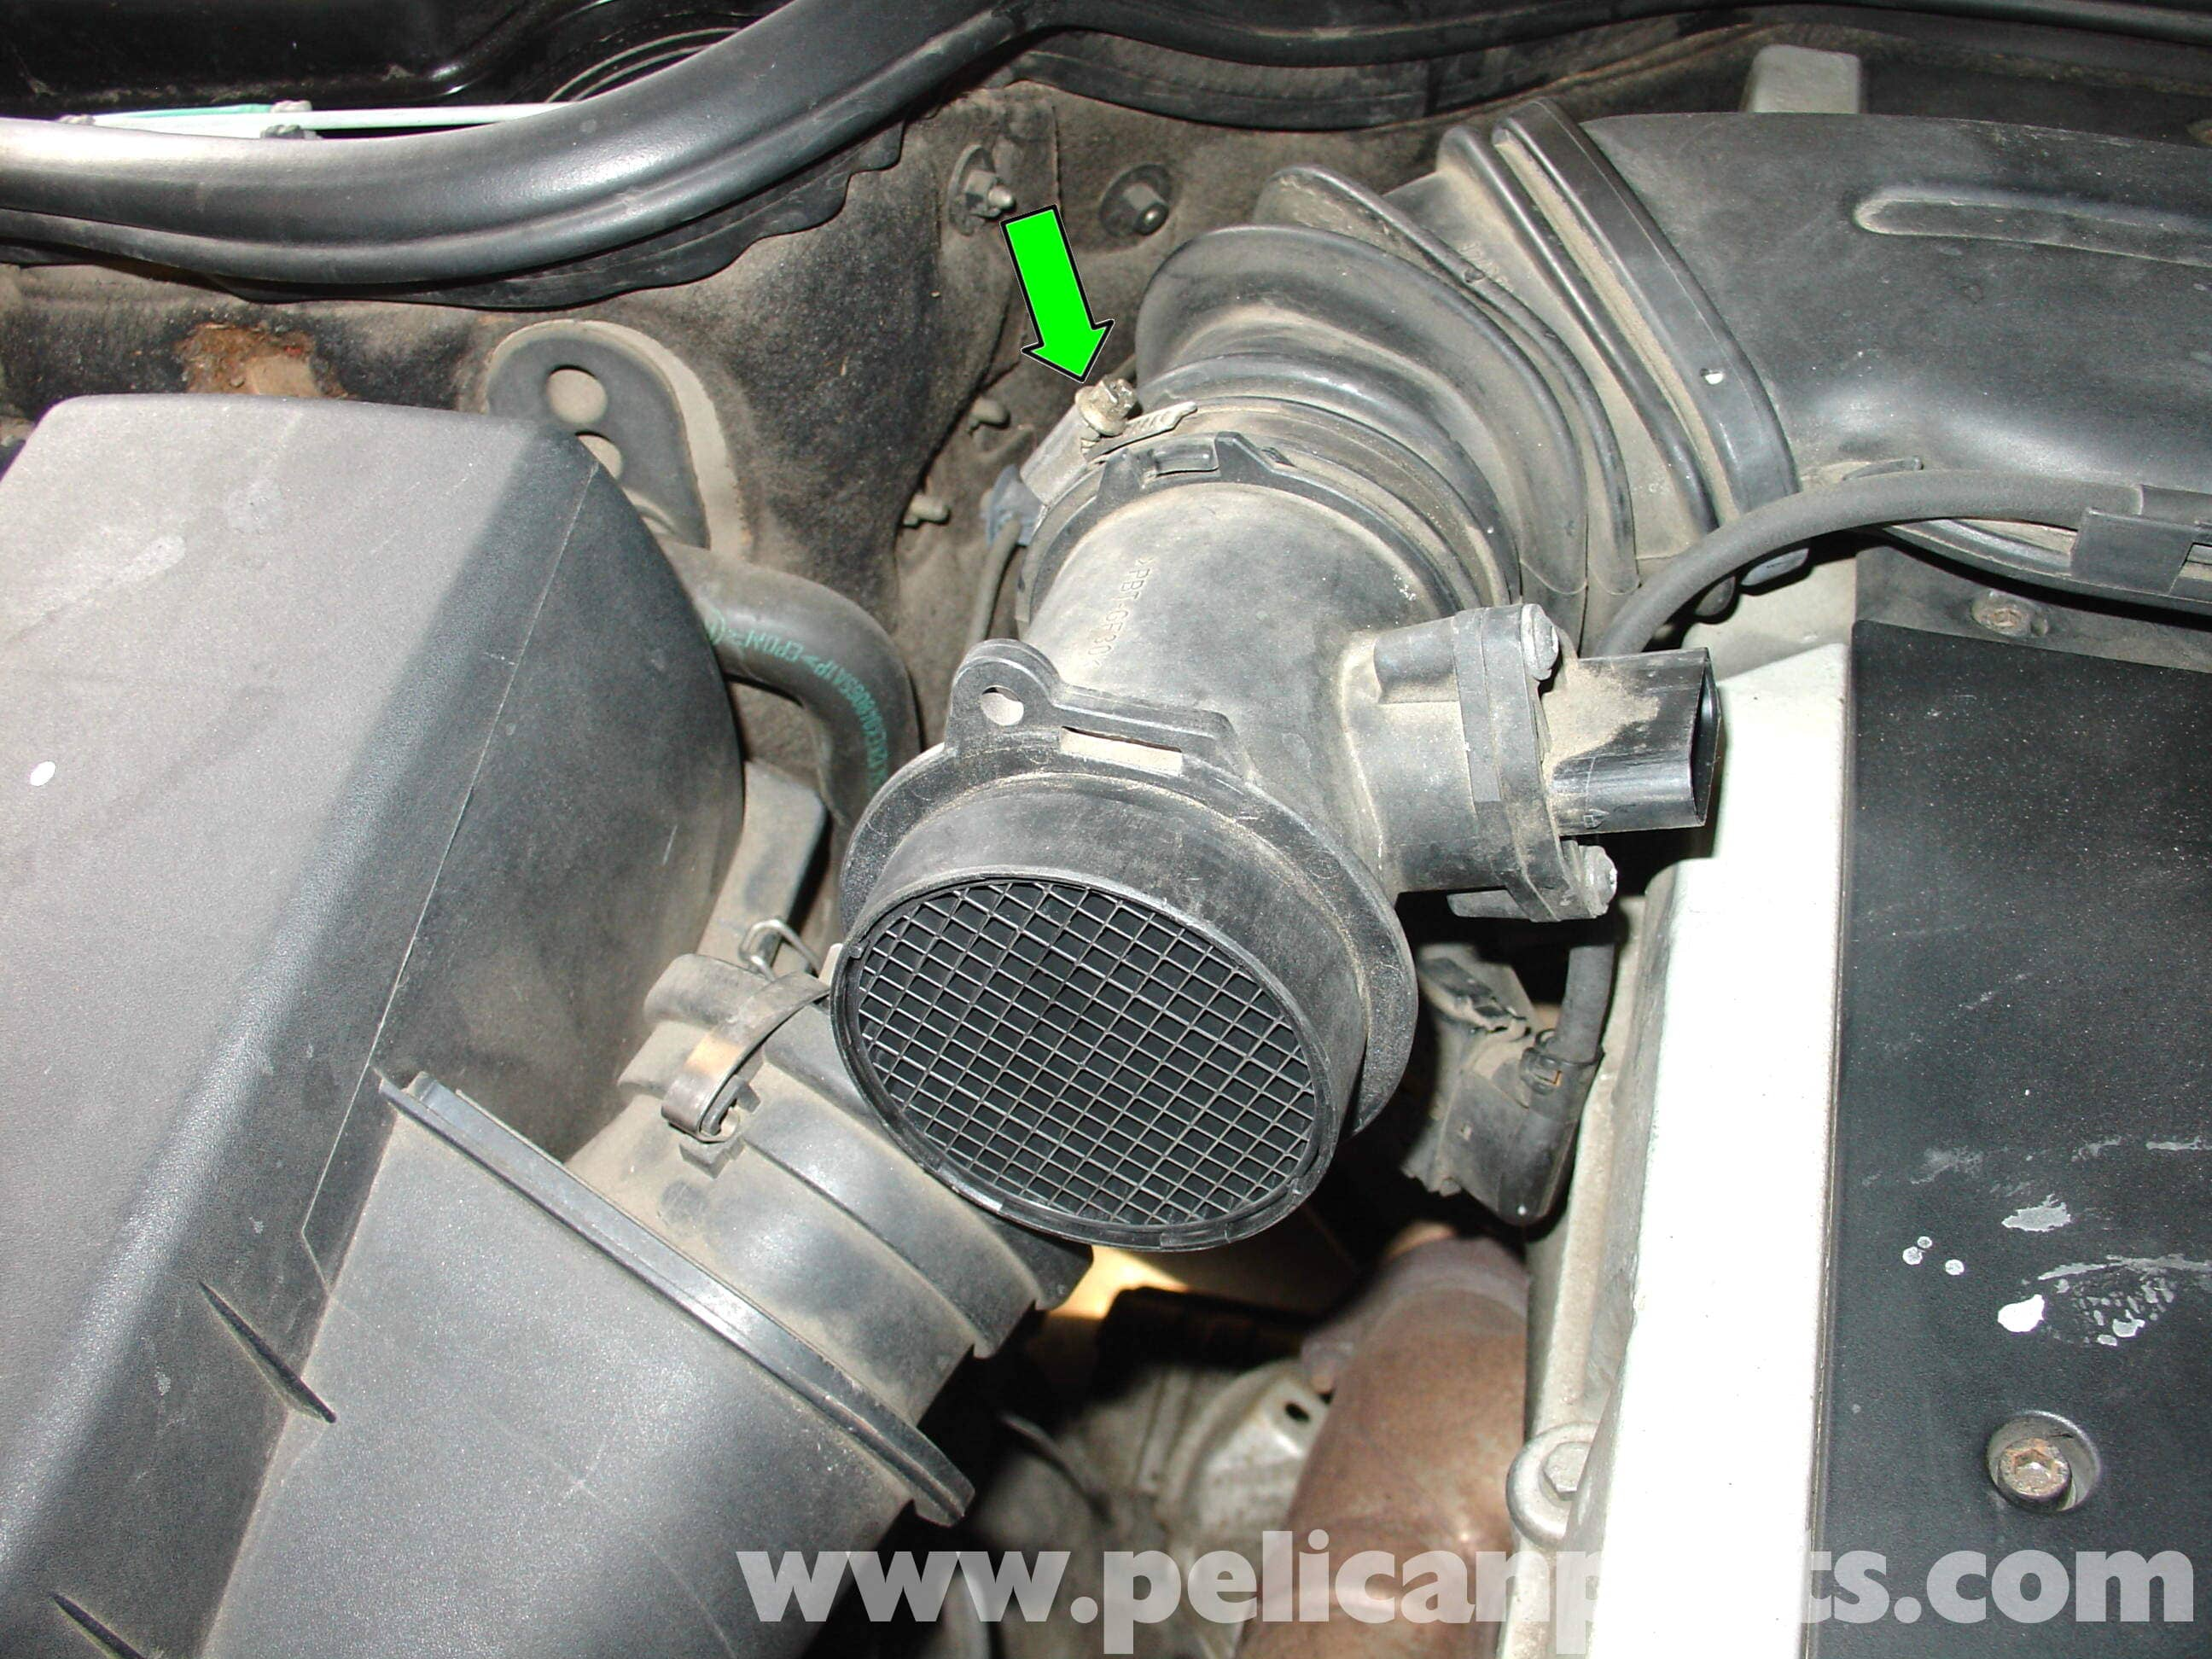 pic05 mercedes benz w210 maf sensor replacement (1996 03) e320, e420 Crank Sensor 5V or 12V at aneh.co